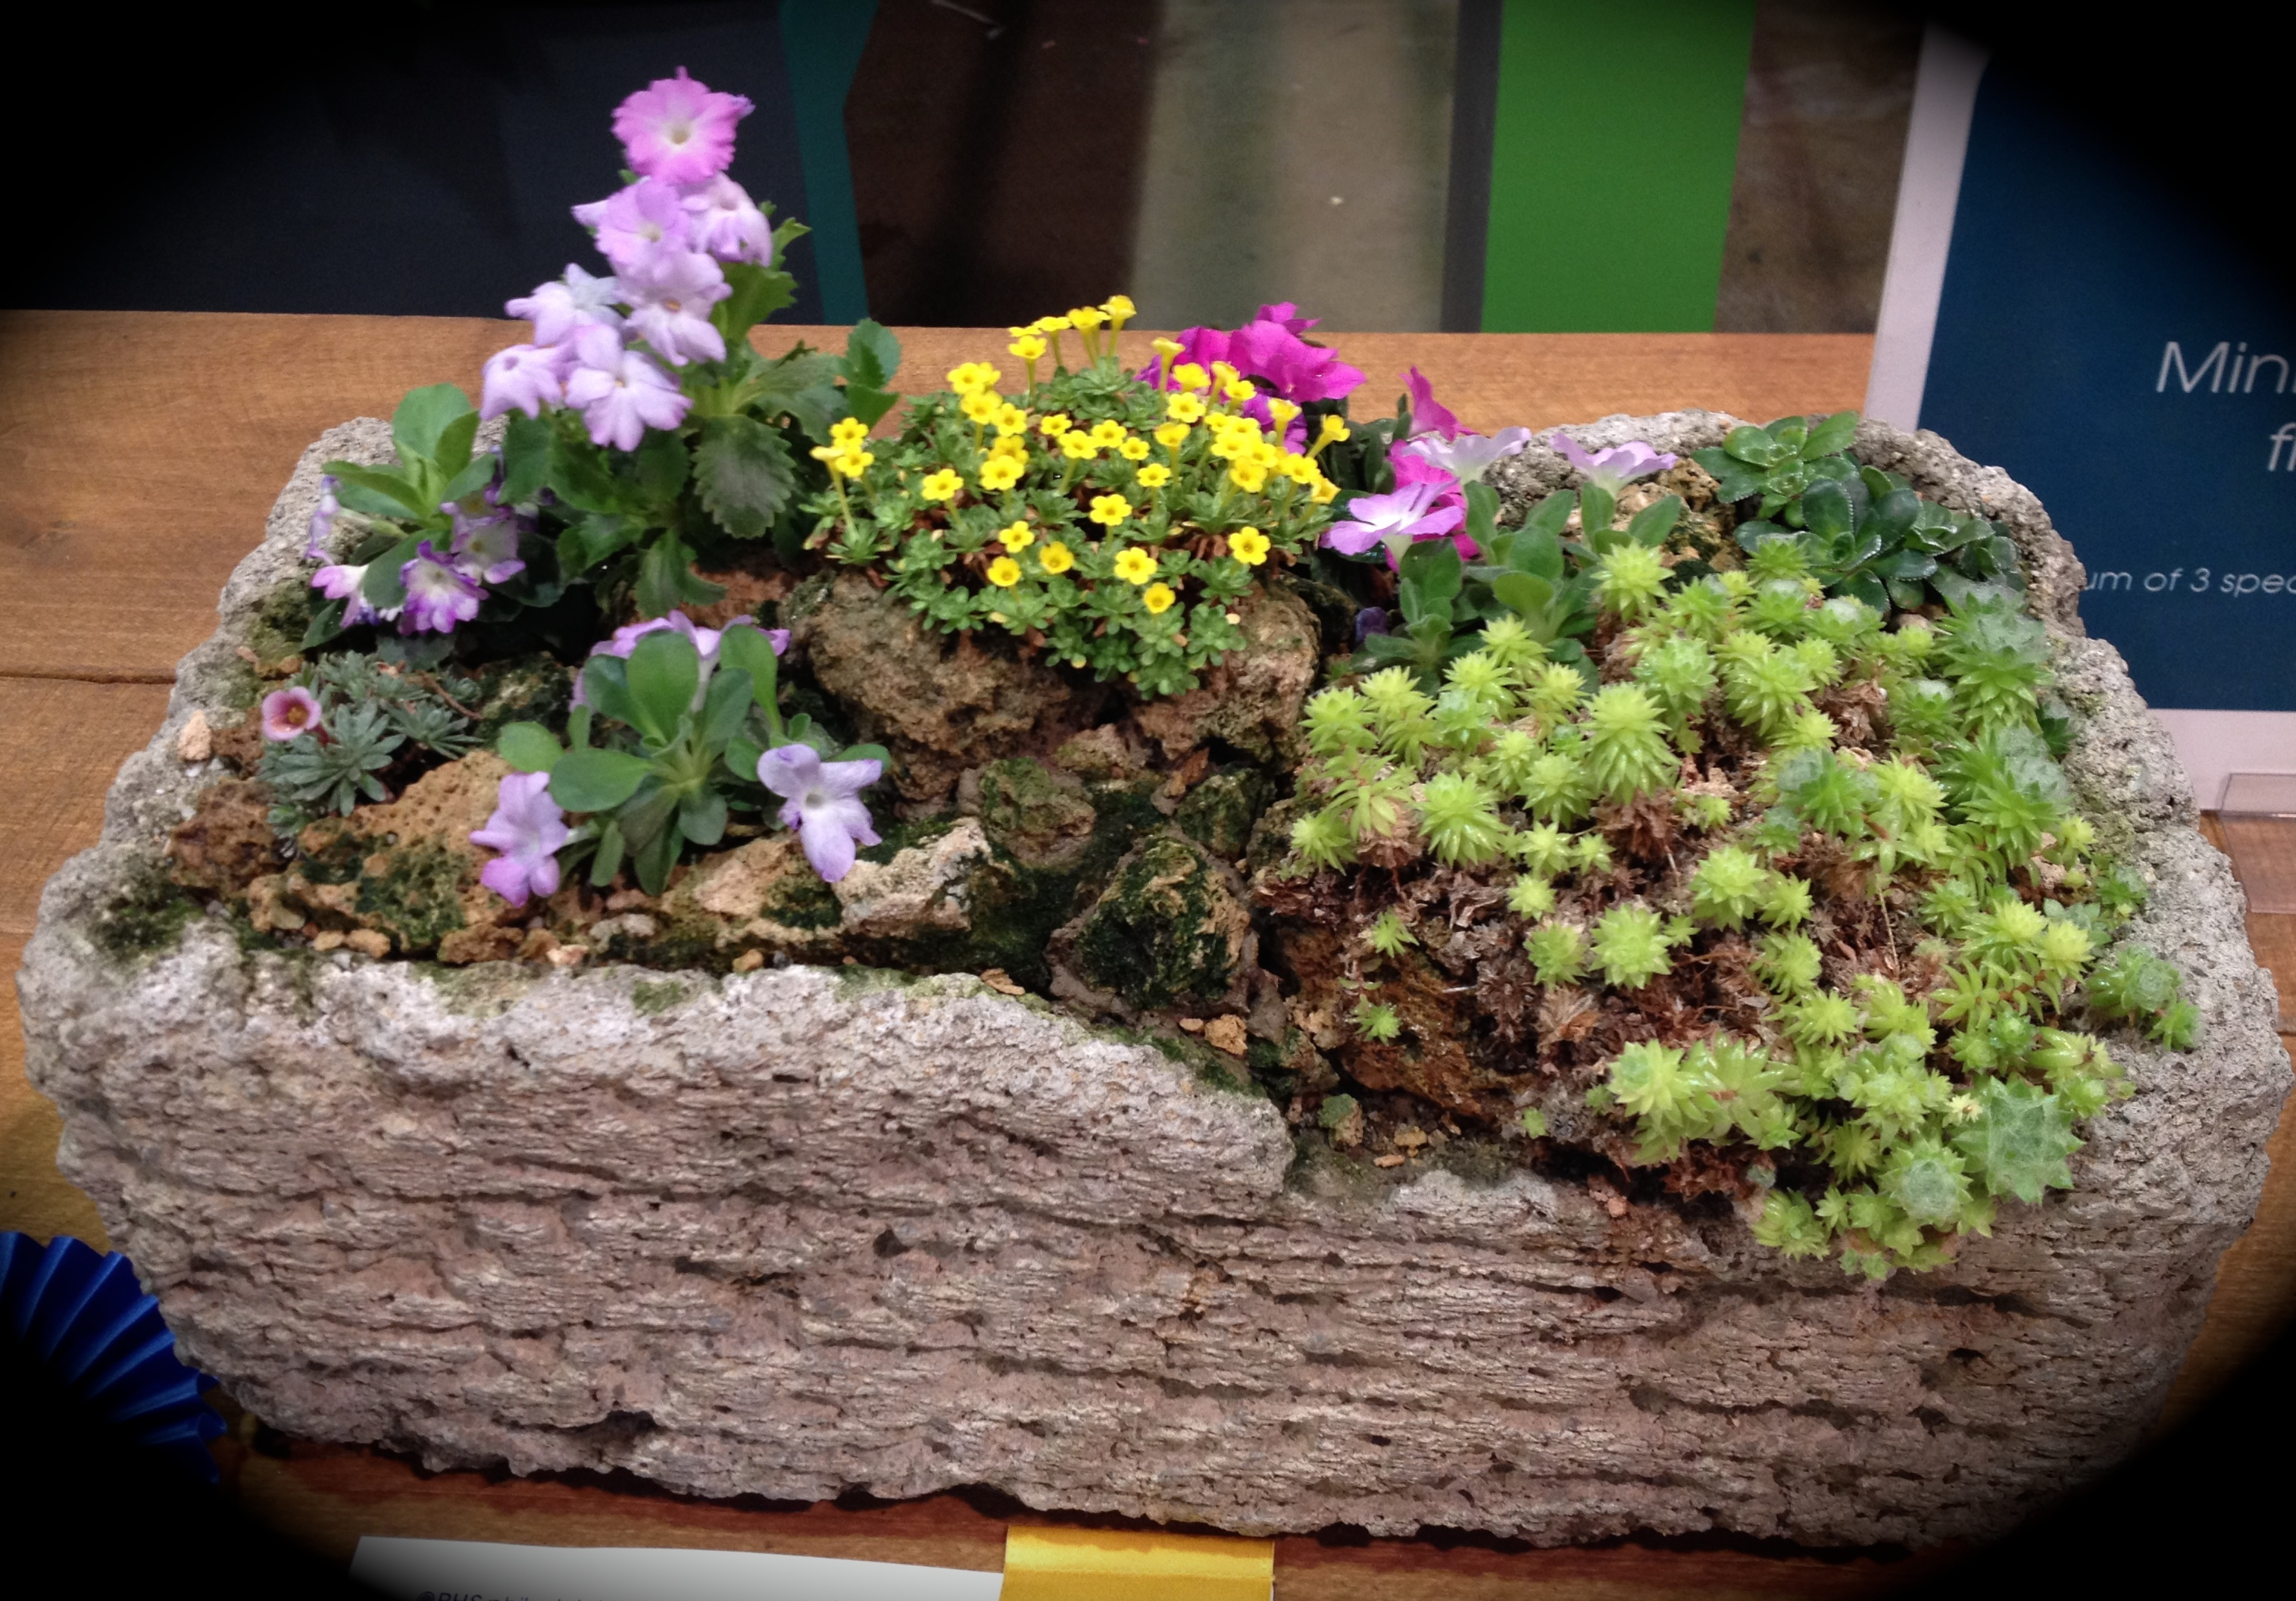 easy care dish gardens Help Aging Parents